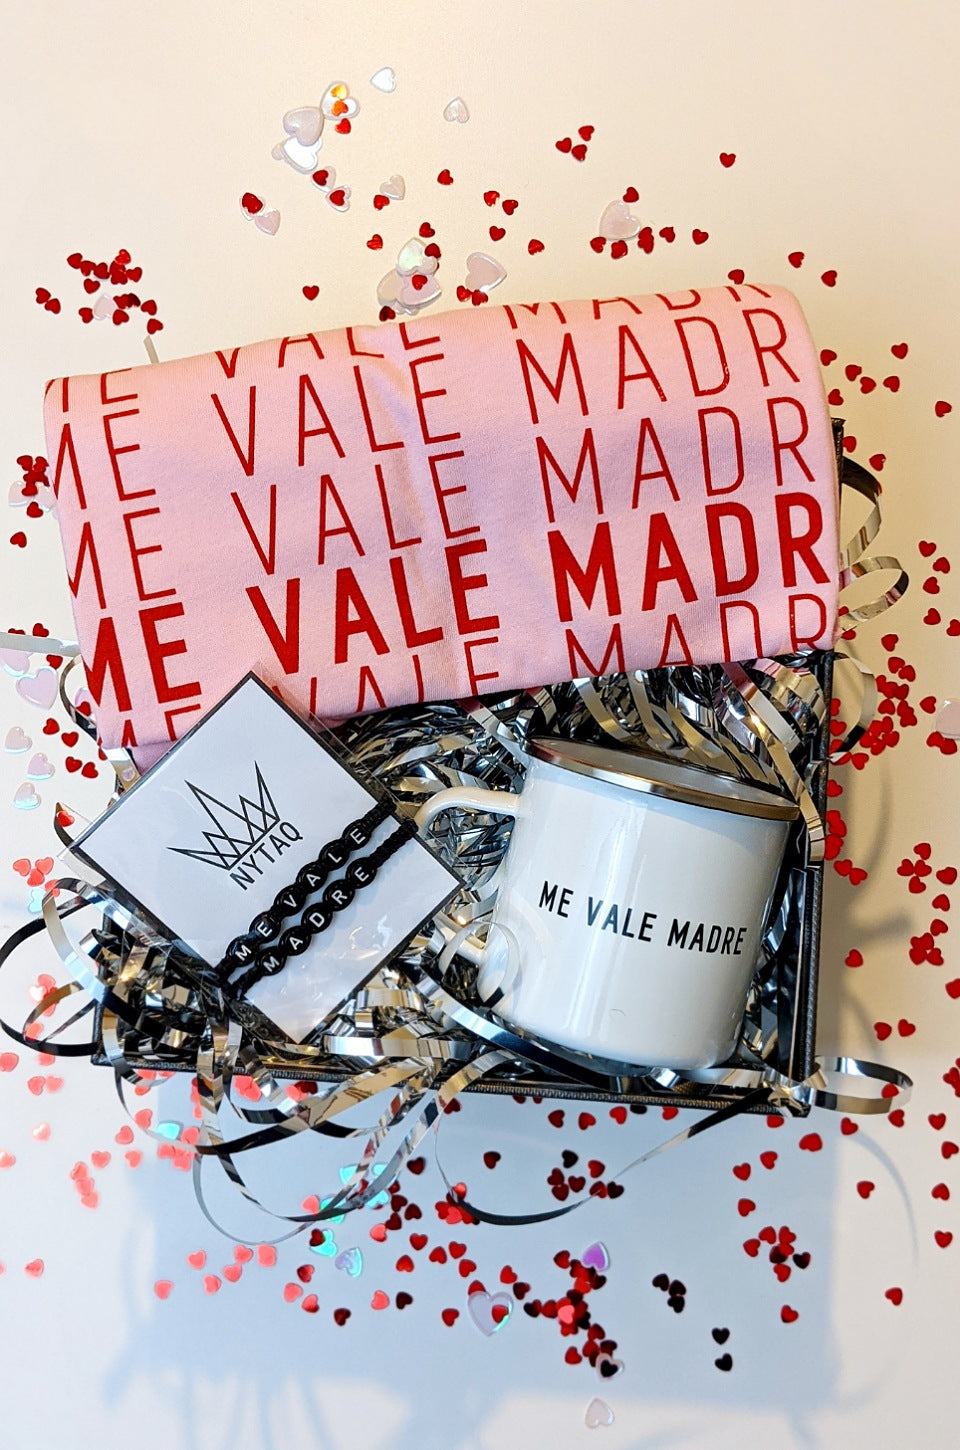 ME VALE MADRE ROYAL GIFT SET